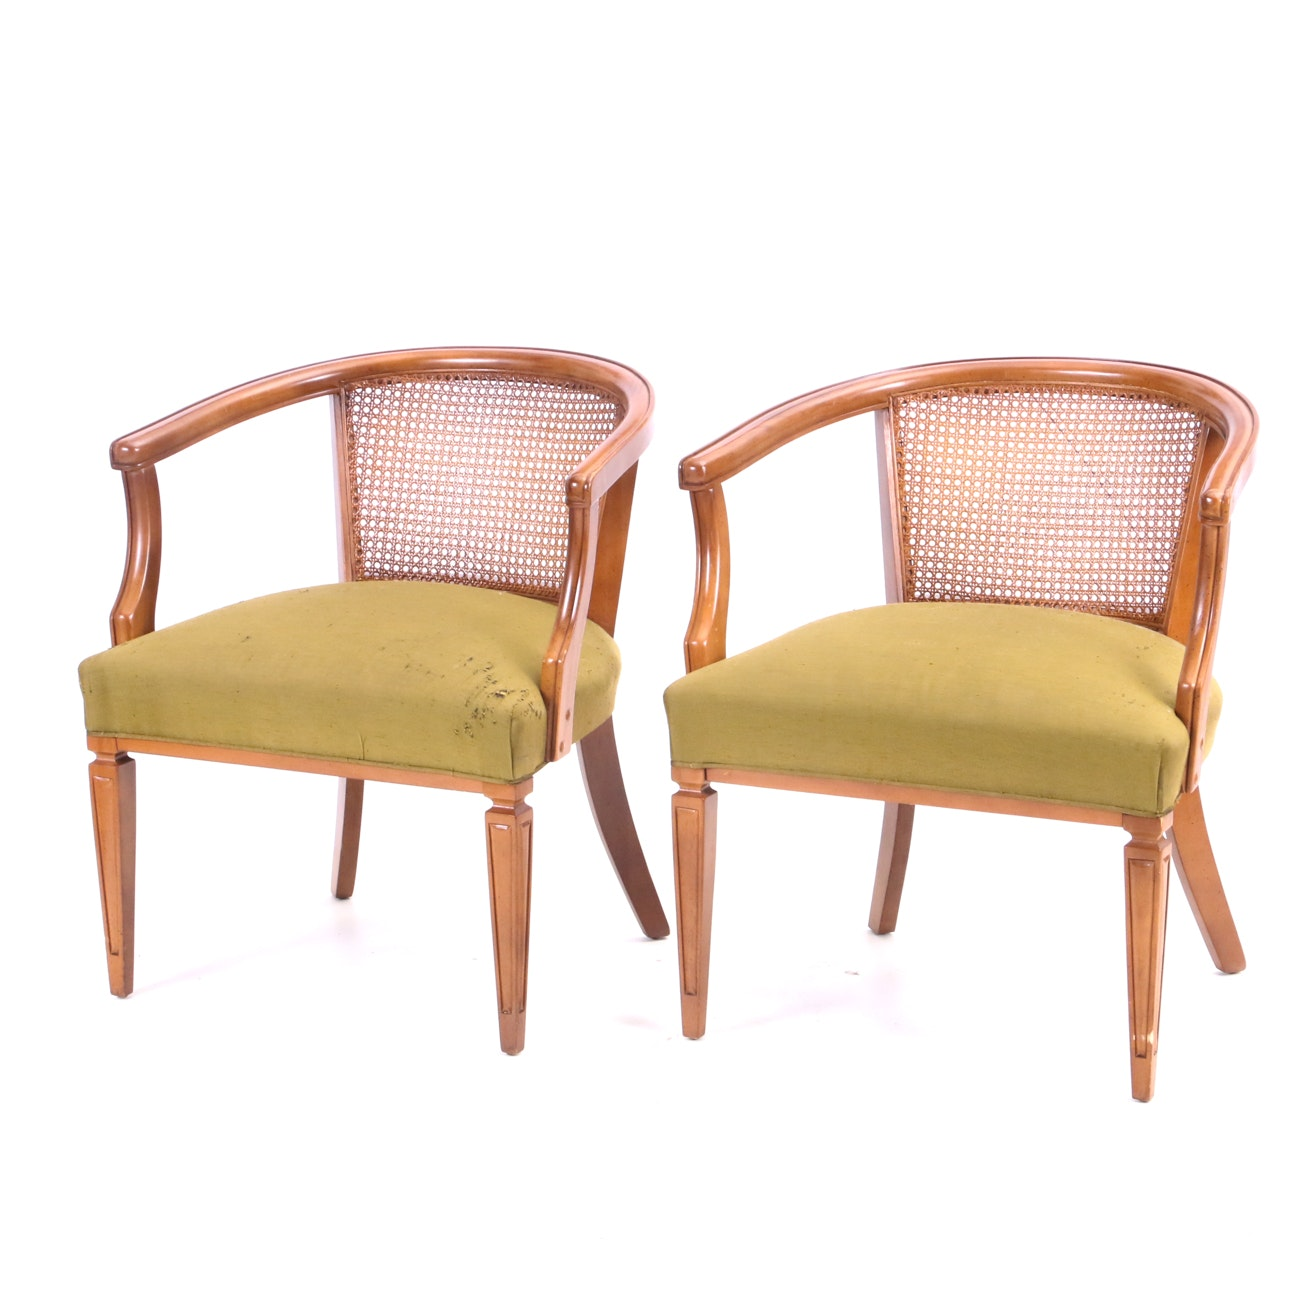 Pair of Mid-Century Caned Armchairs